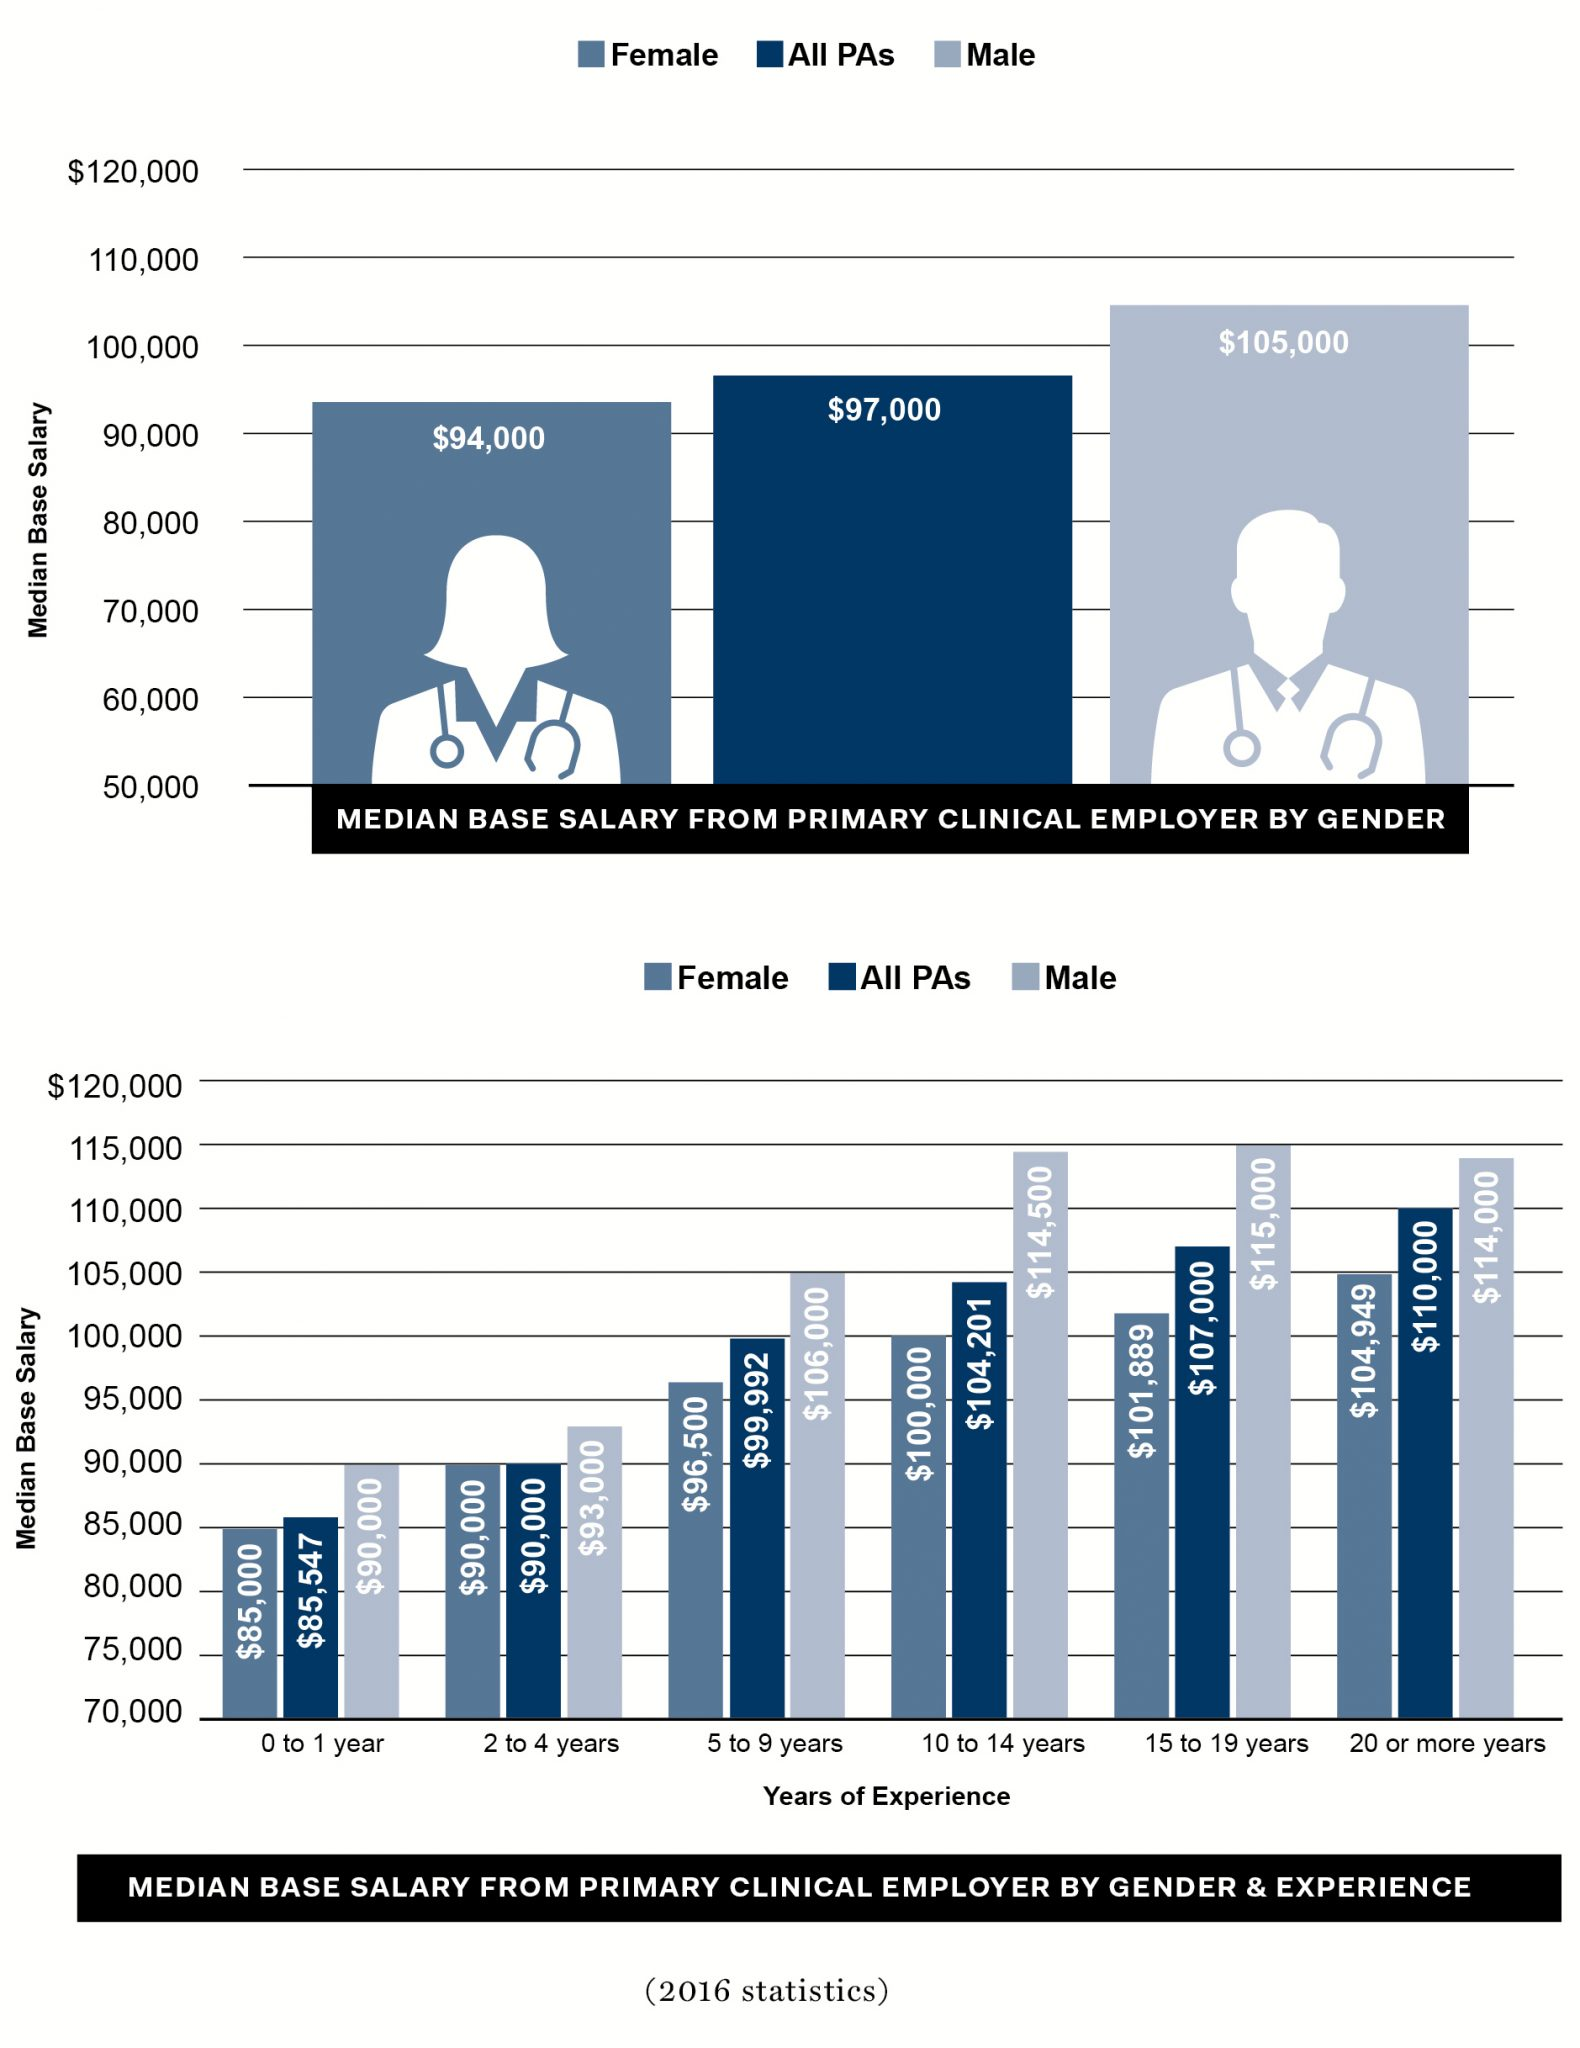 aapa salary report Statistics: AAPA Salary Report at a Glance - ProviderMatching.com